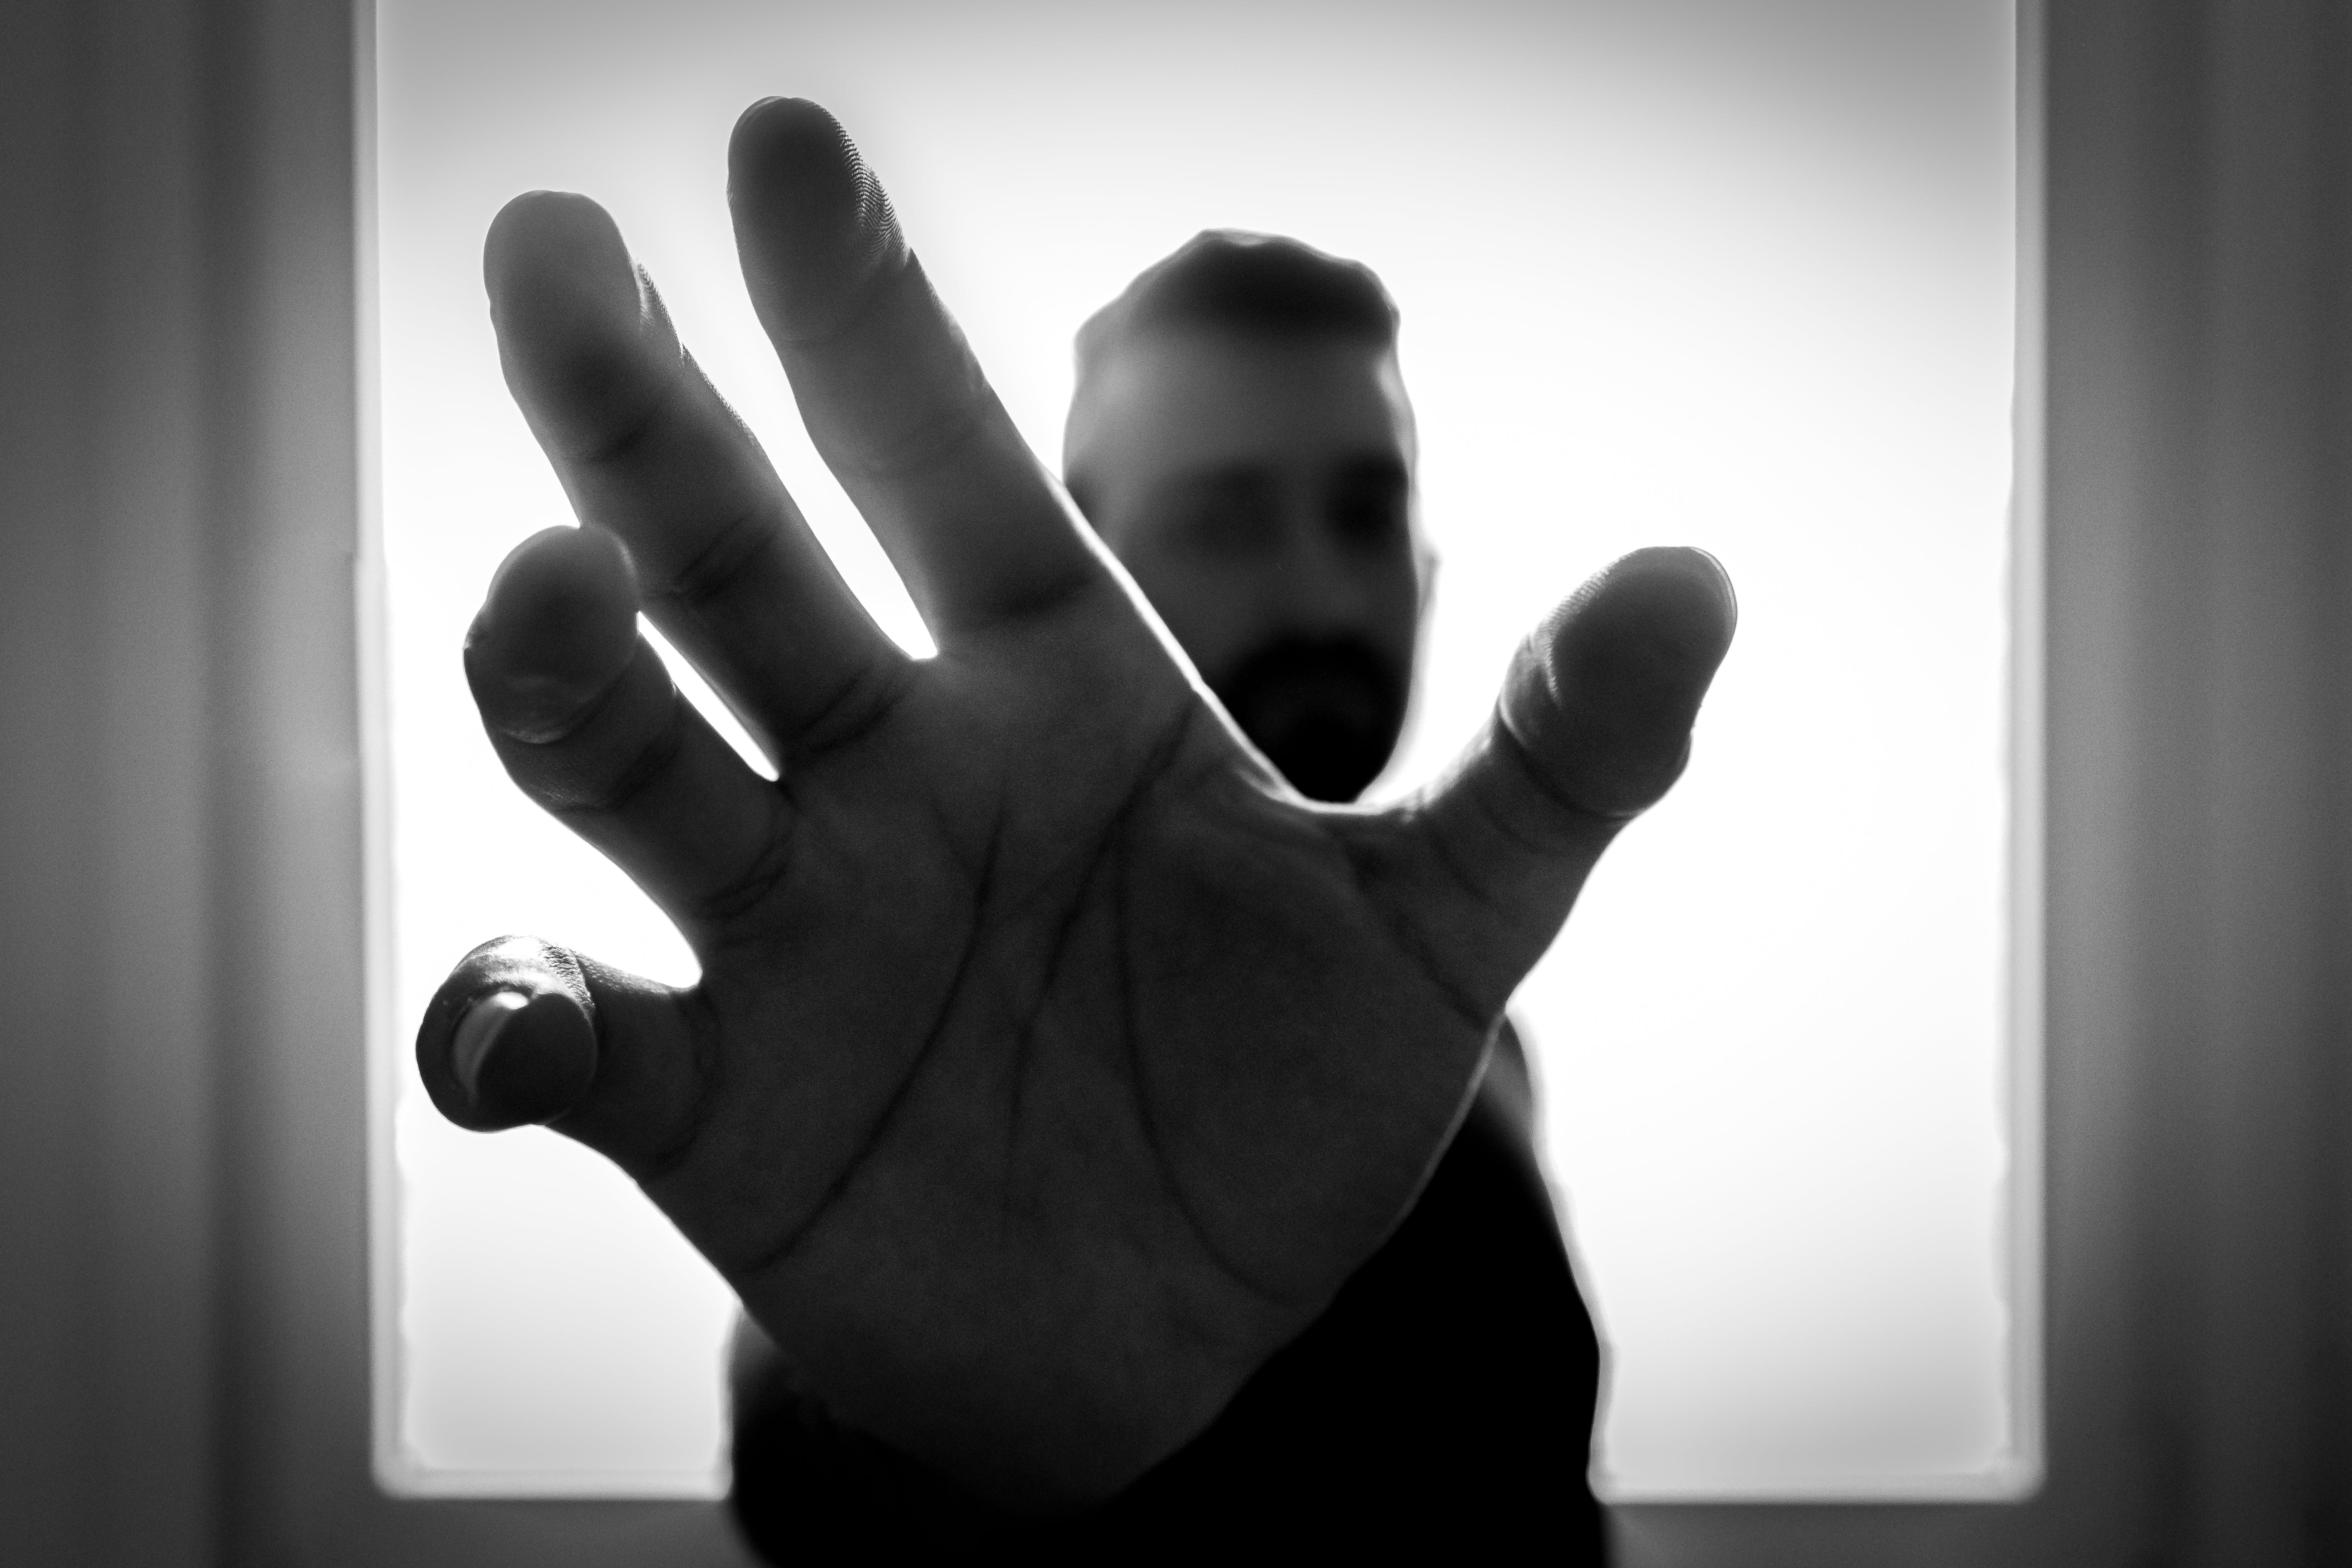 Grayscale Photo of Man Grabbing Using Right Hand